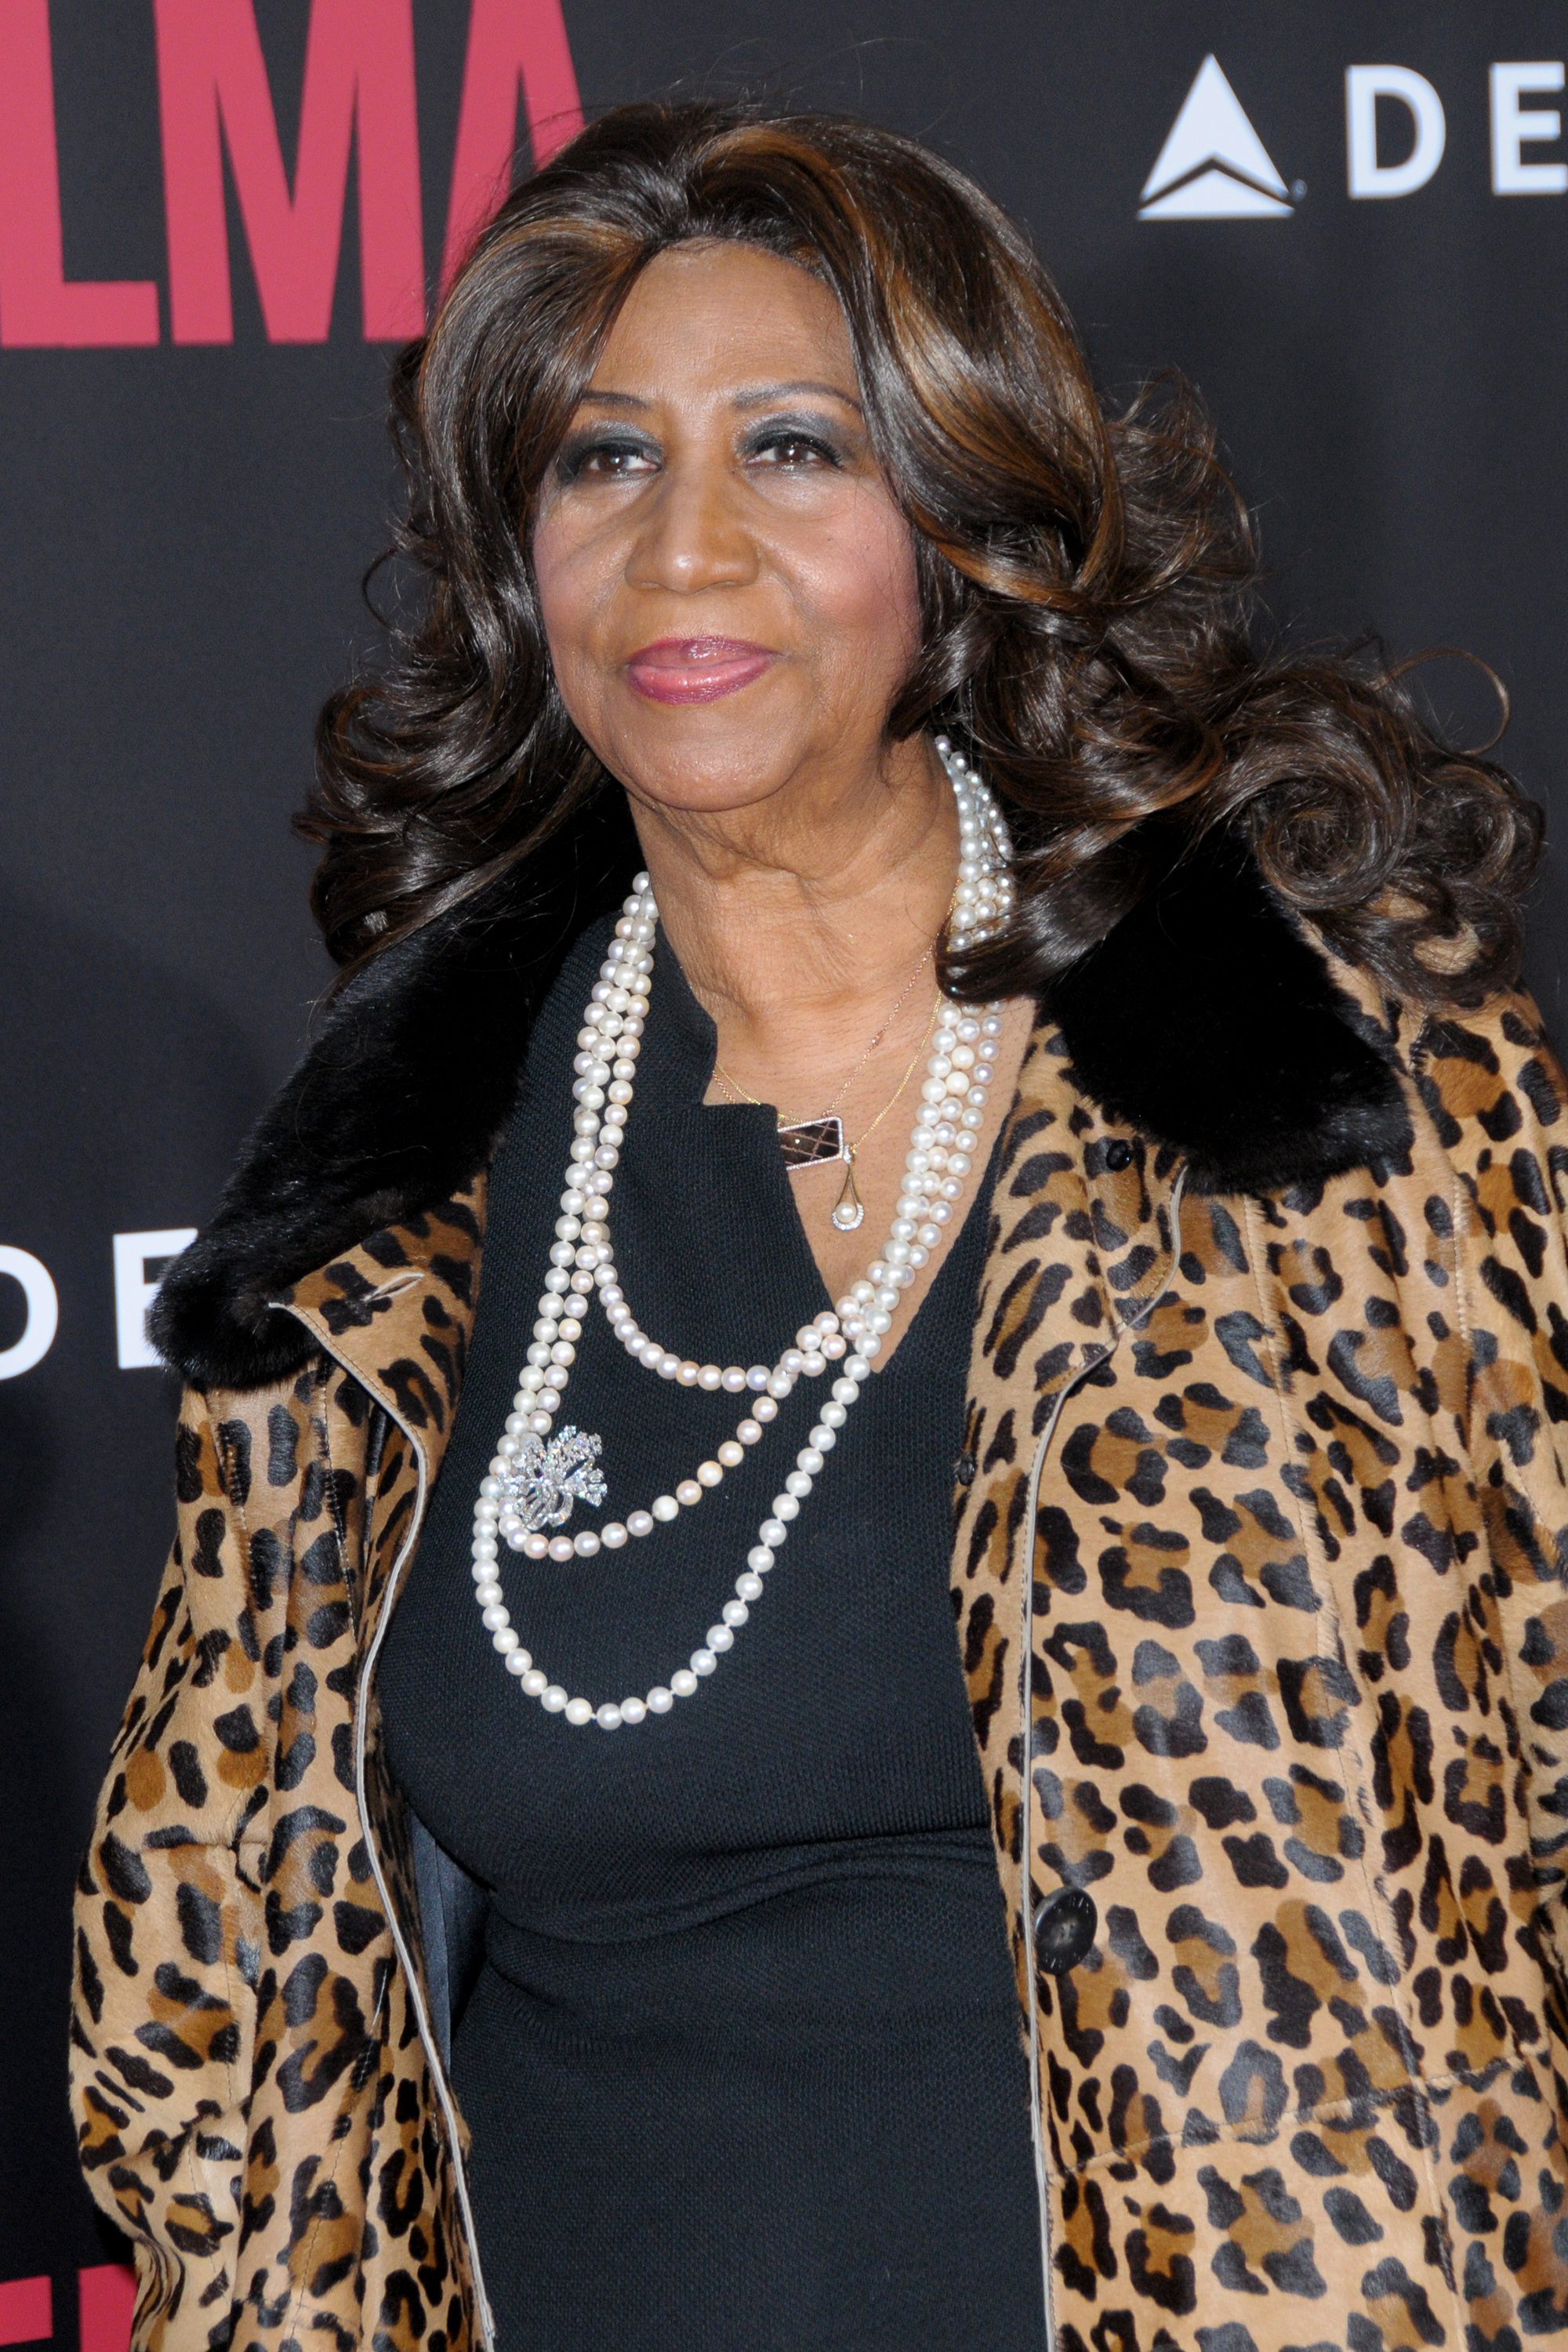 New York premiere of 'Selma' held at the Ziegfeld Theater - ArrivalsFeaturing: Aretha FranklinWhere: New York City, New York, United StatesWhen: 14 Dec 2014Credit: Ivan Nikolov/WENN.com